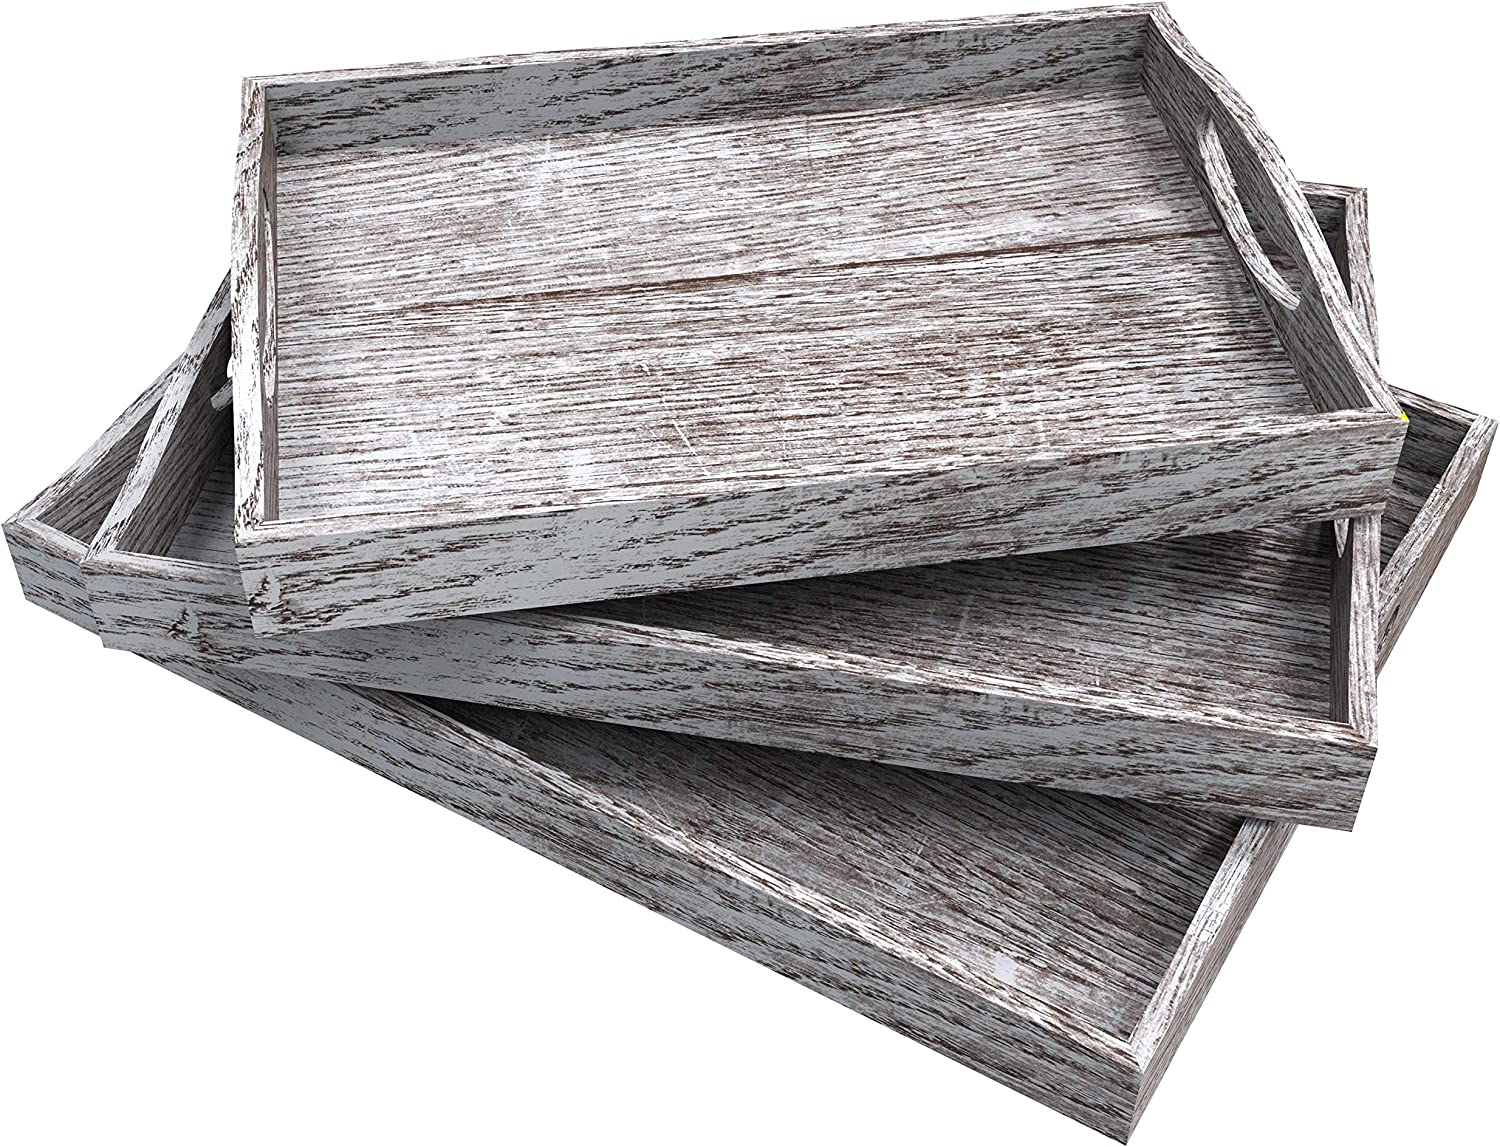 Rustic Wooden Serving Max 62% OFF Trays with Handle Medi Large 3 wholesale Set of -